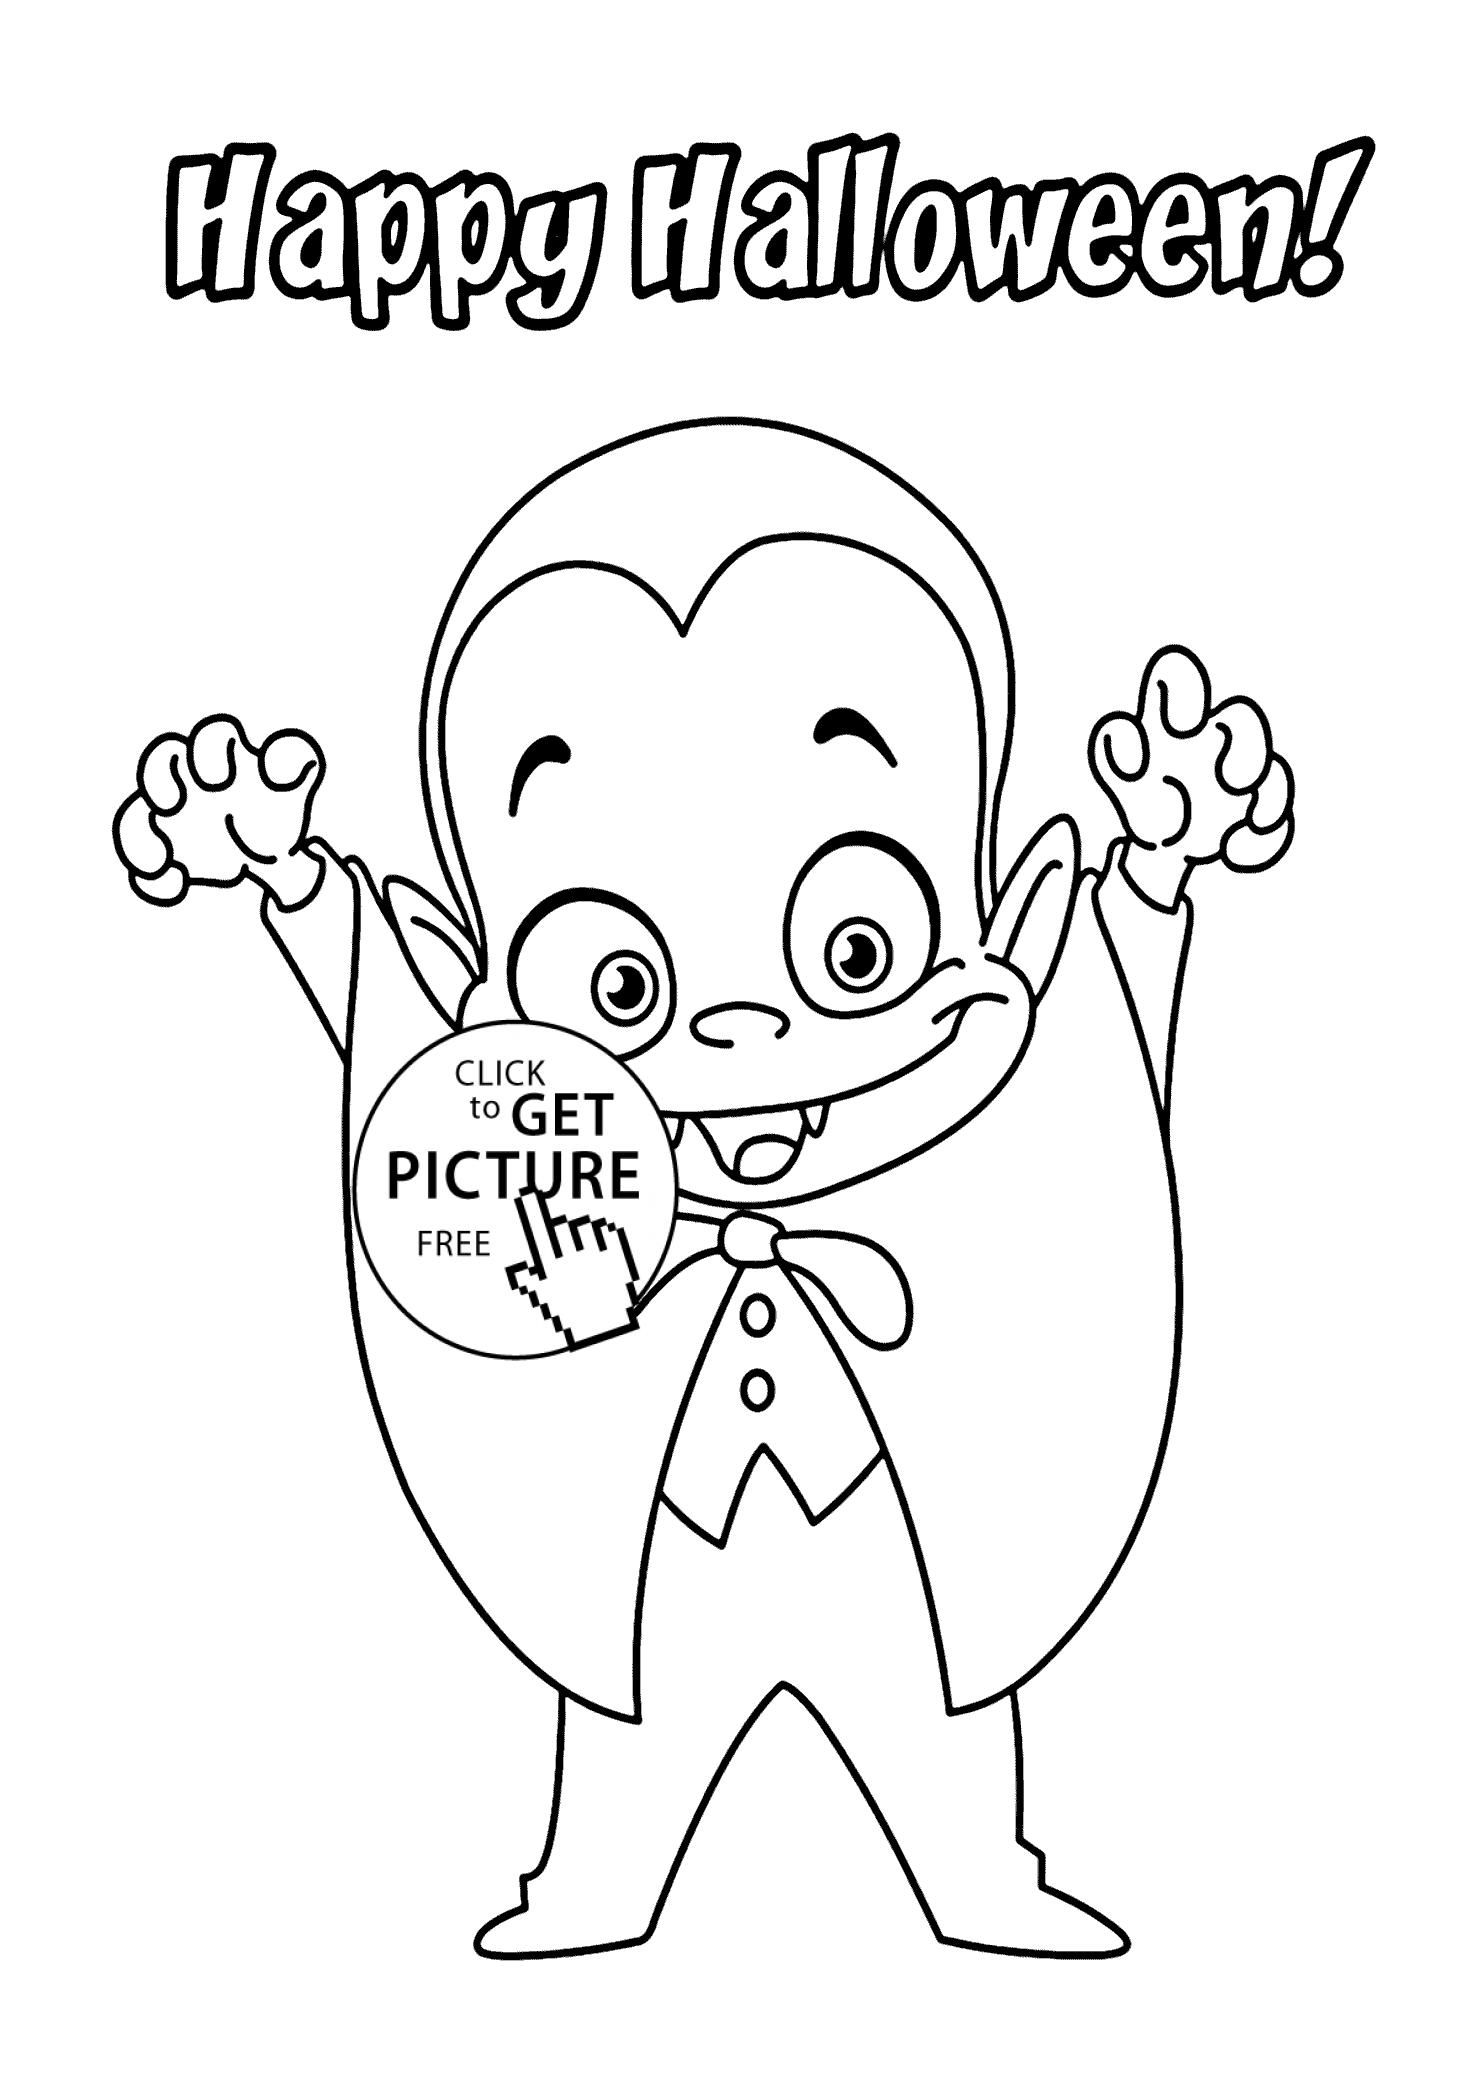 10 Coloring Page Vampire Halloween Coloring Sheets Coloring Pages For Kids Coloring Pages